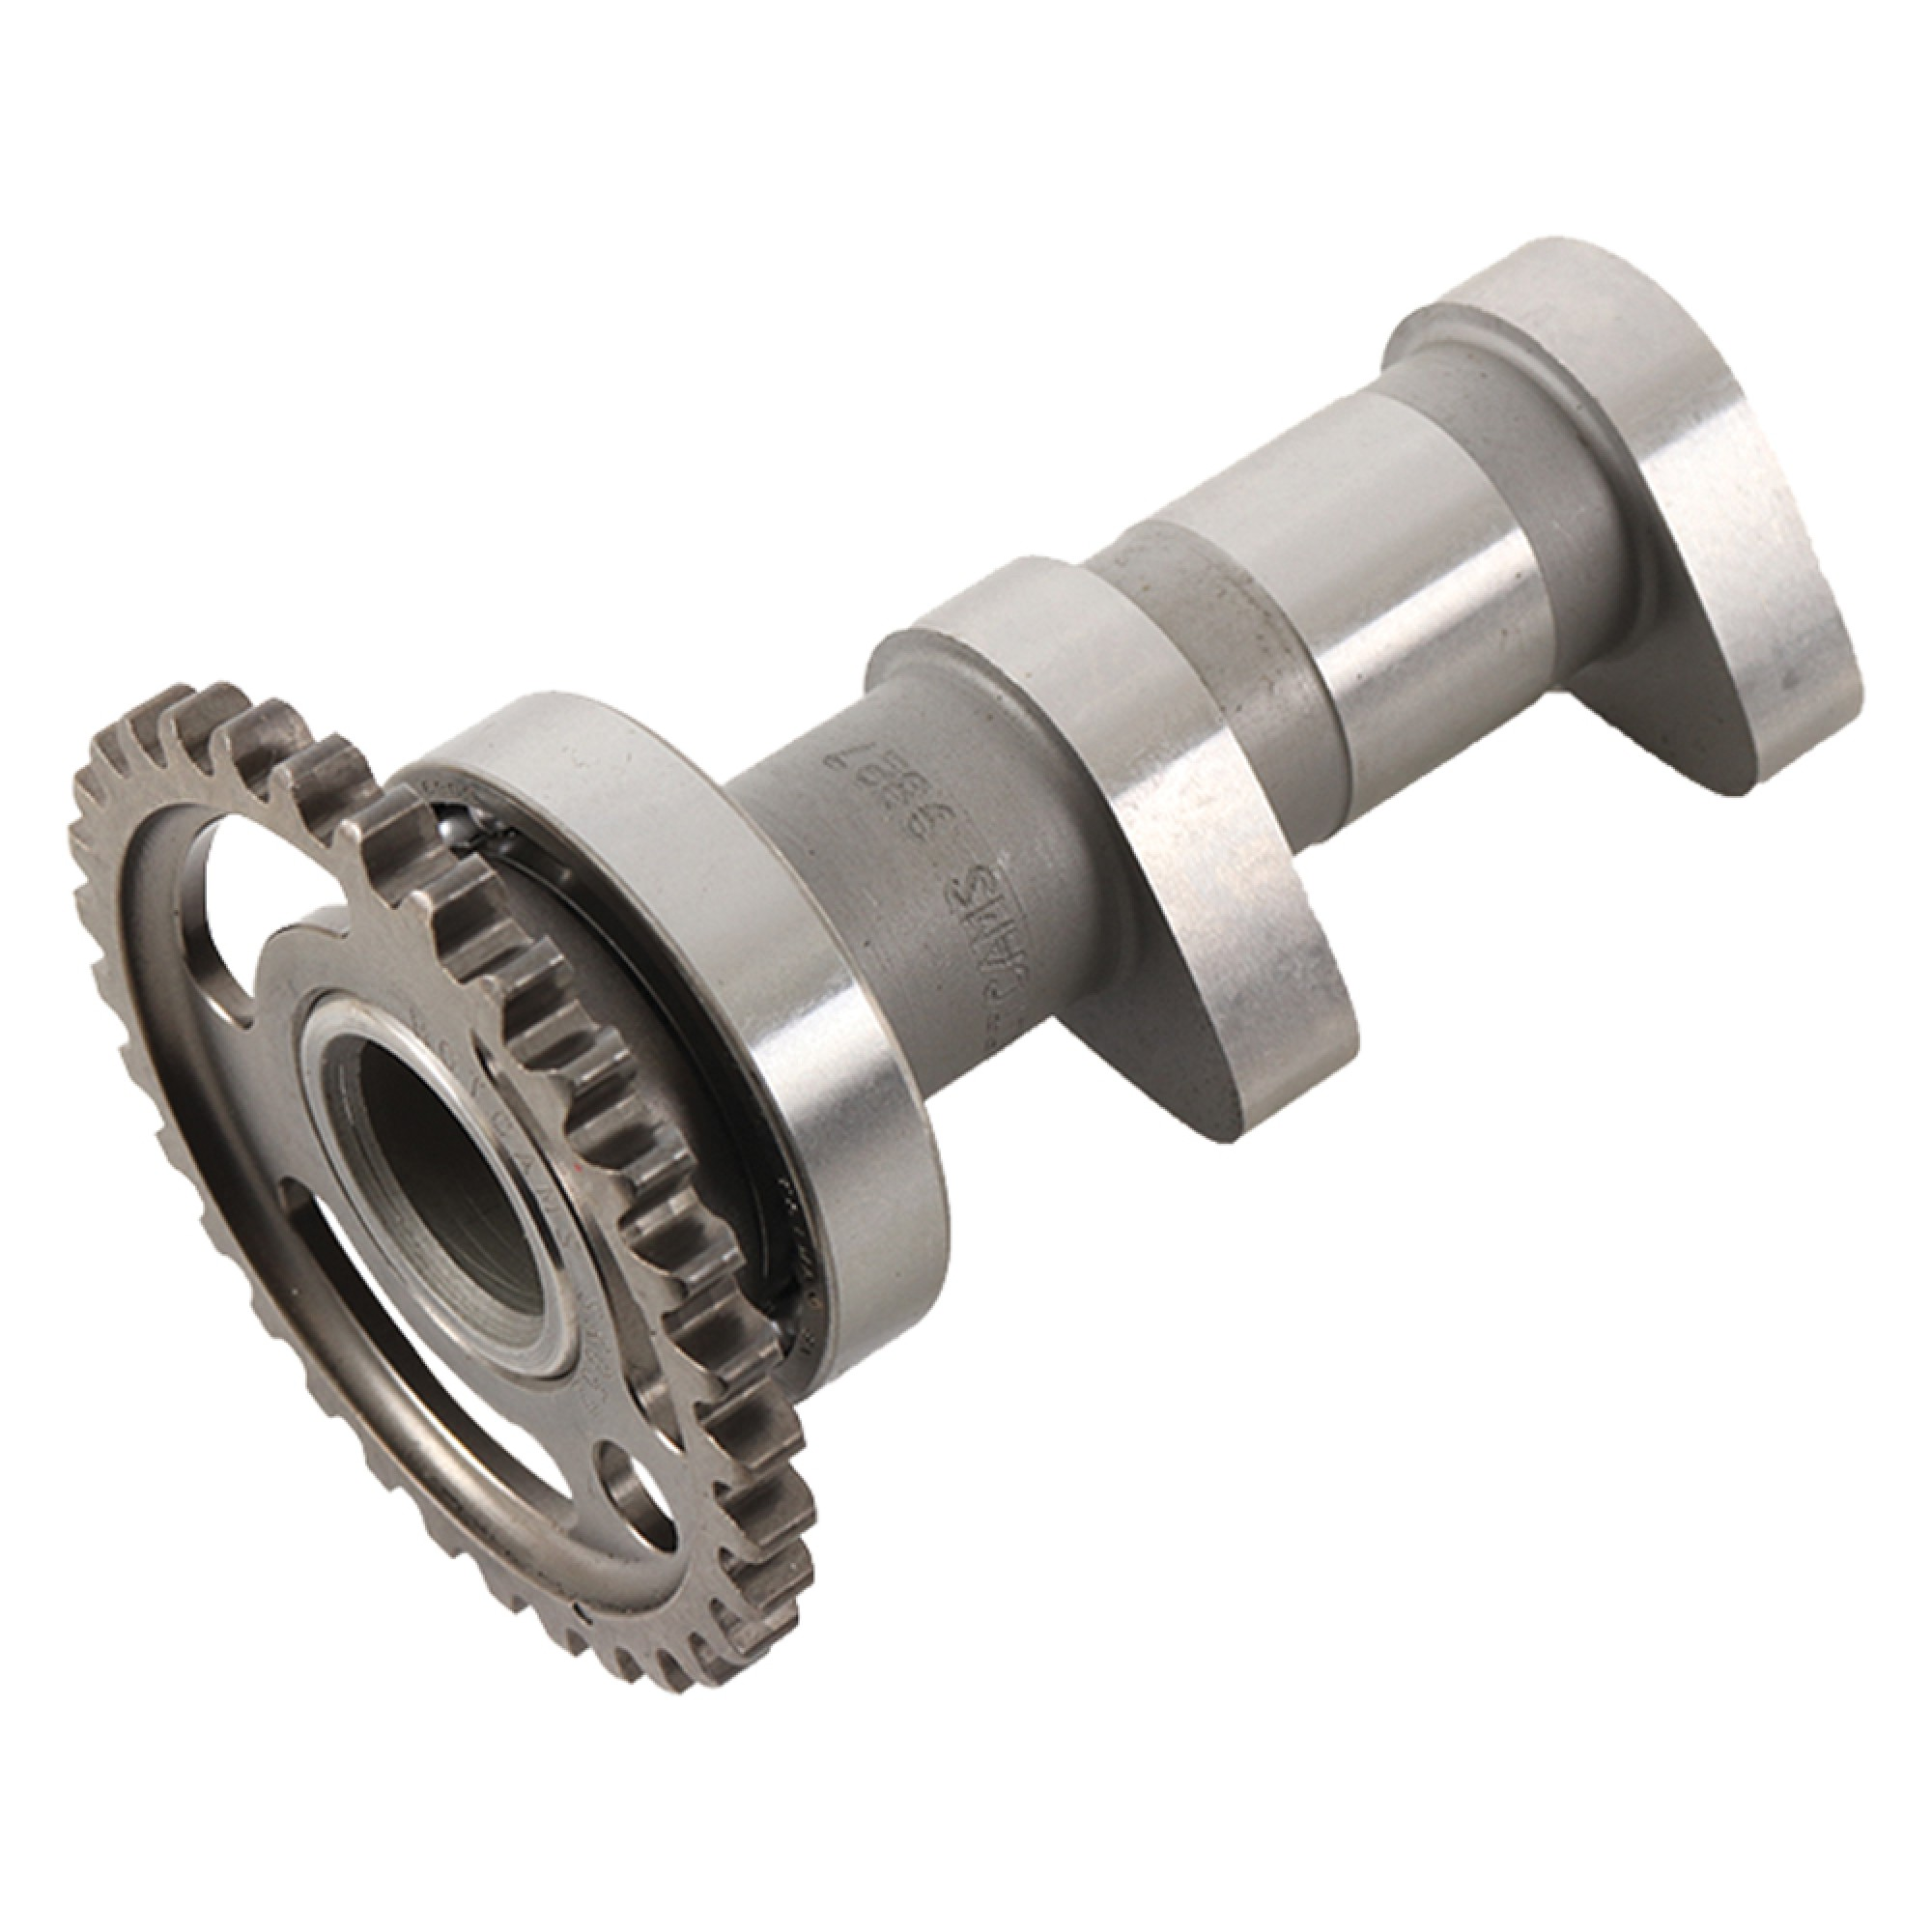 Hot Cams 2266-1IN Stage 1 Intake Camshaft